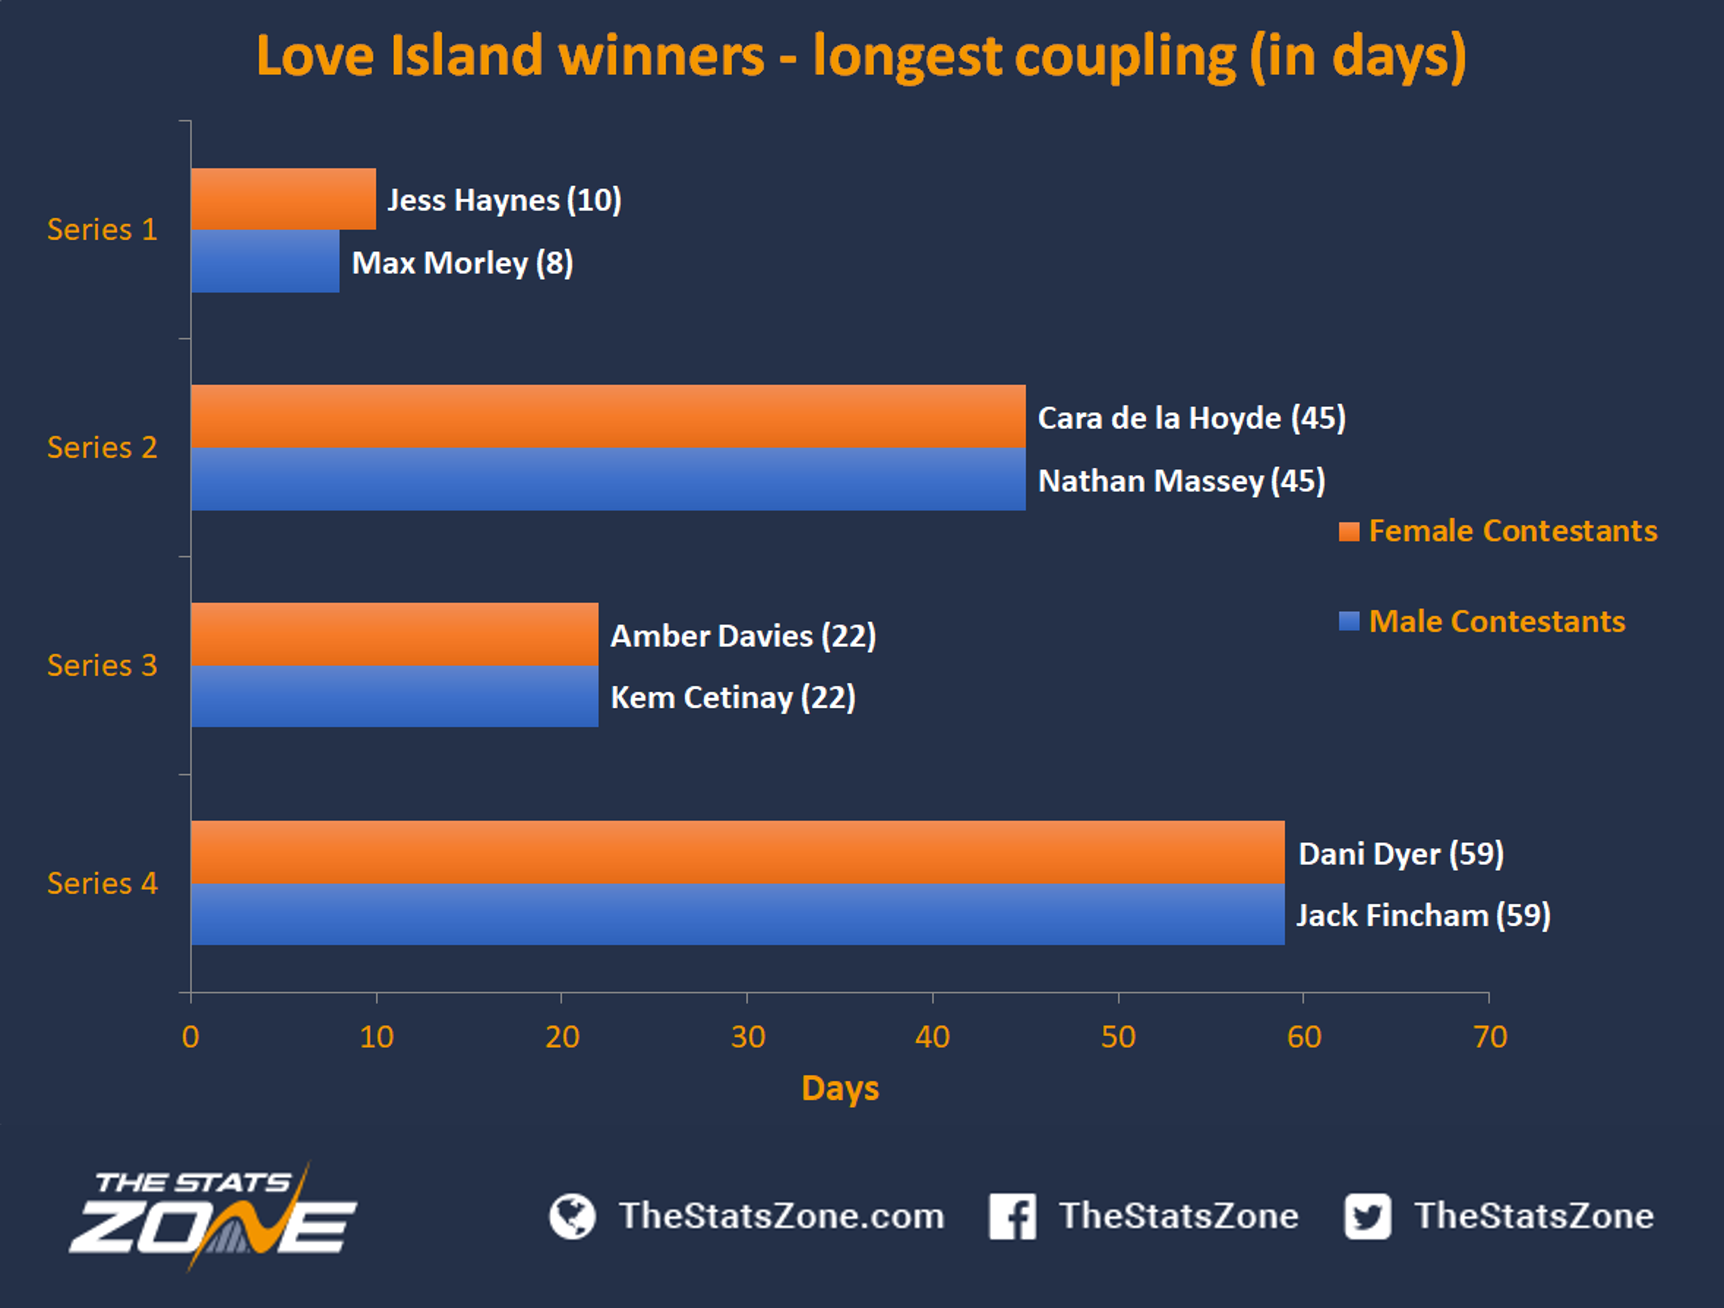 What Does It Take To Win Love Island? - The Stats Zone